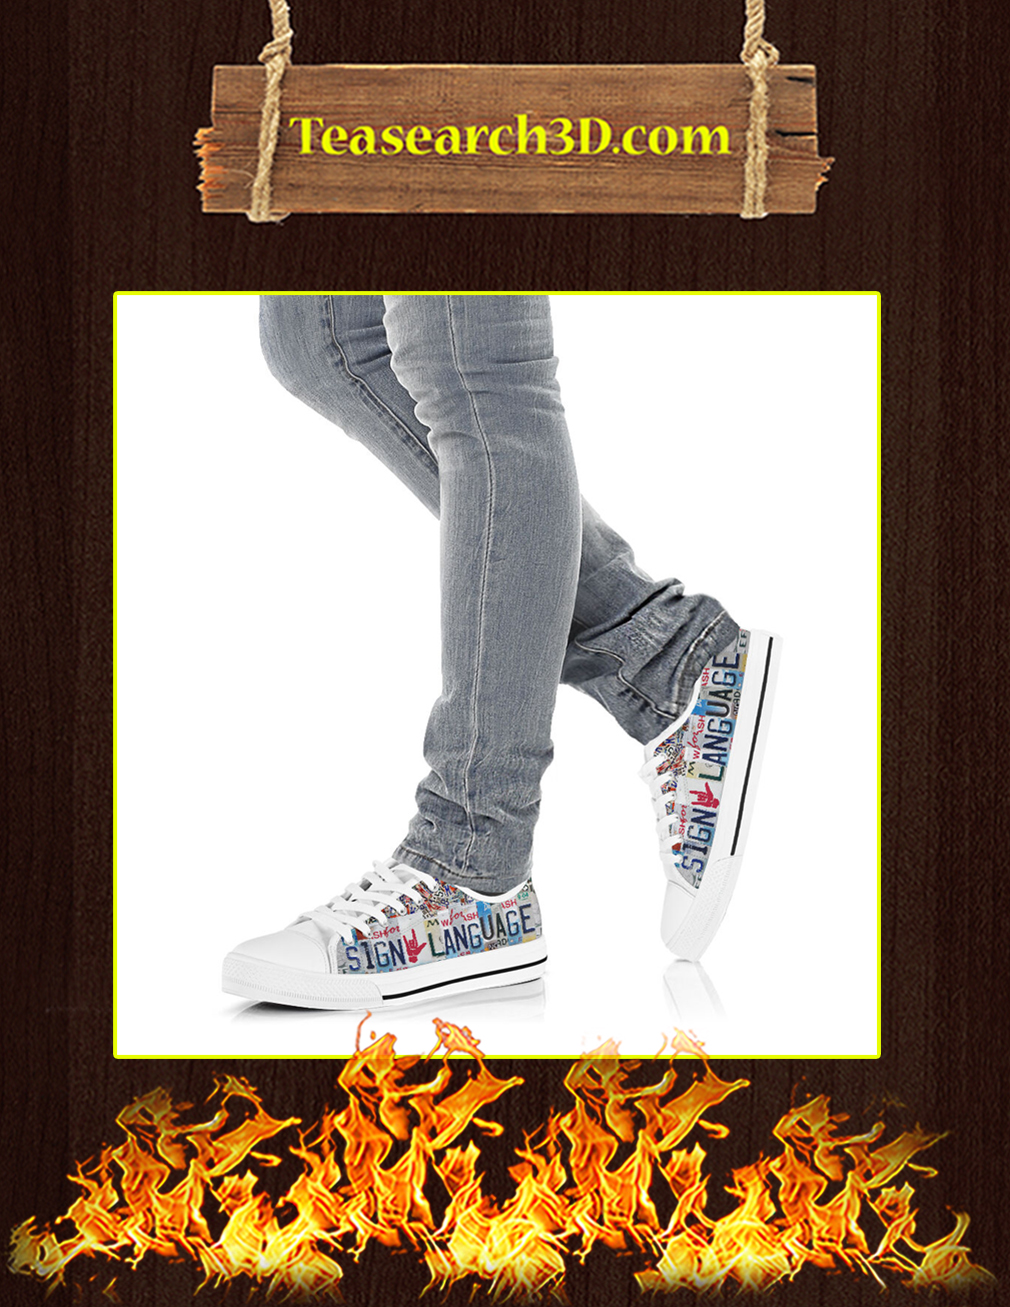 Sign Language Low Top Shoes pic 2